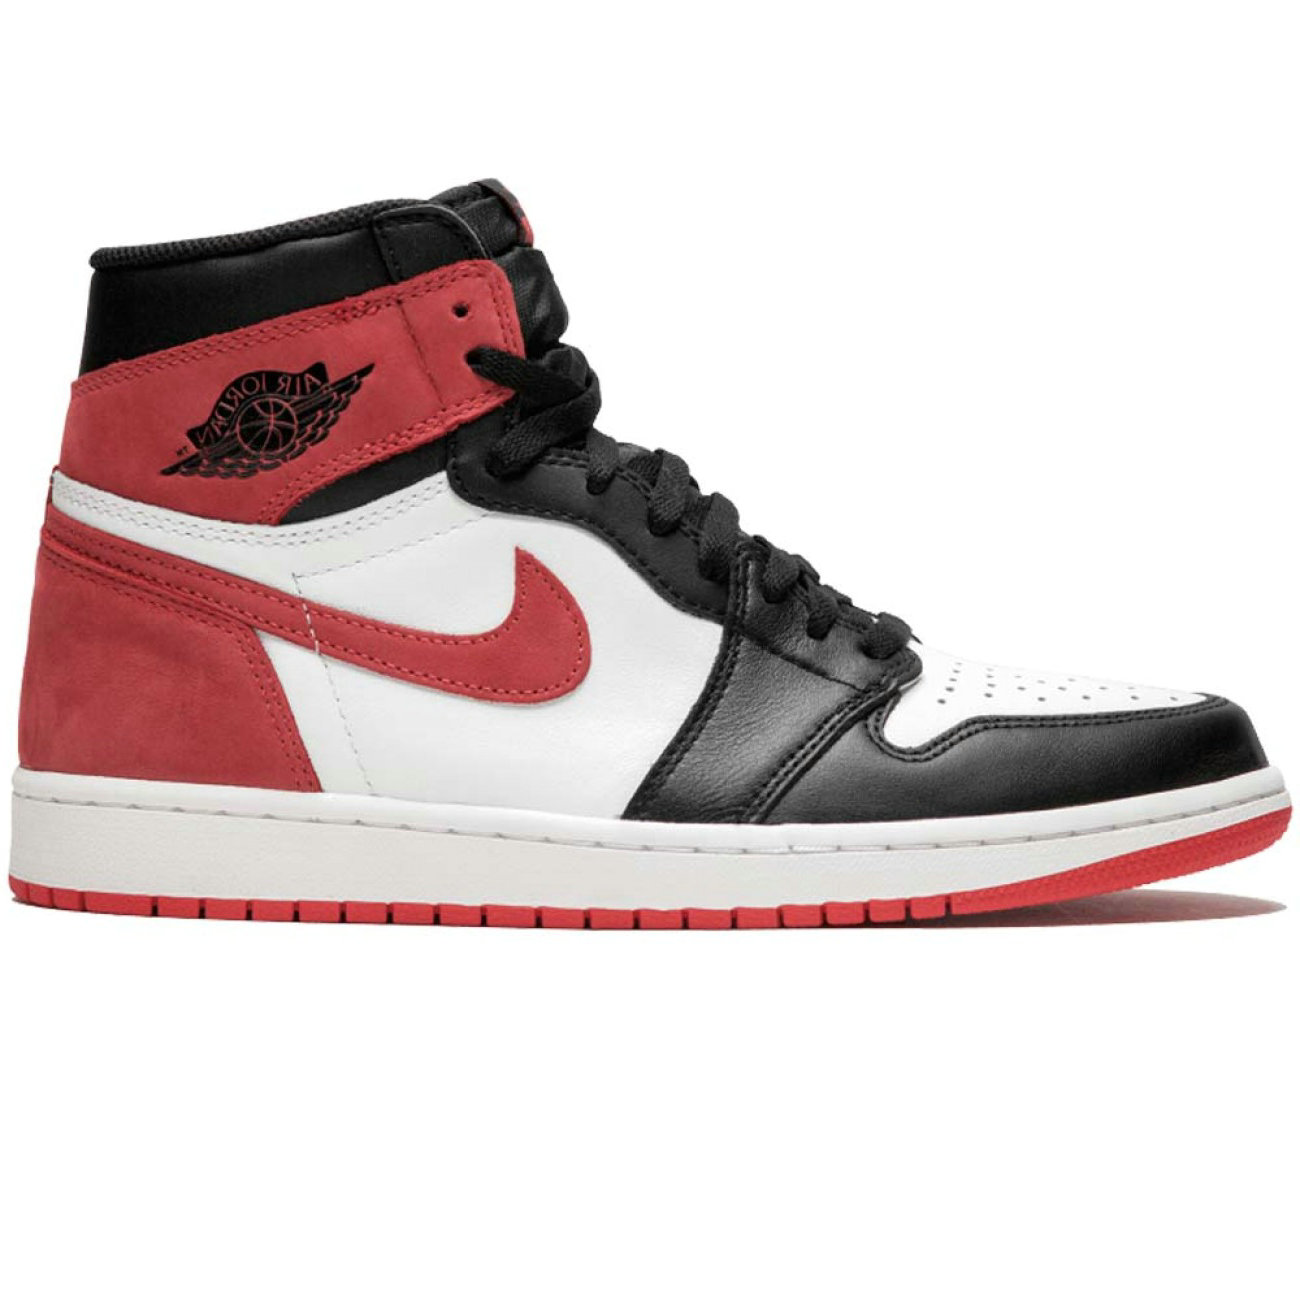 "Air Jordan 1 Retro High OG ""Summit Red"""